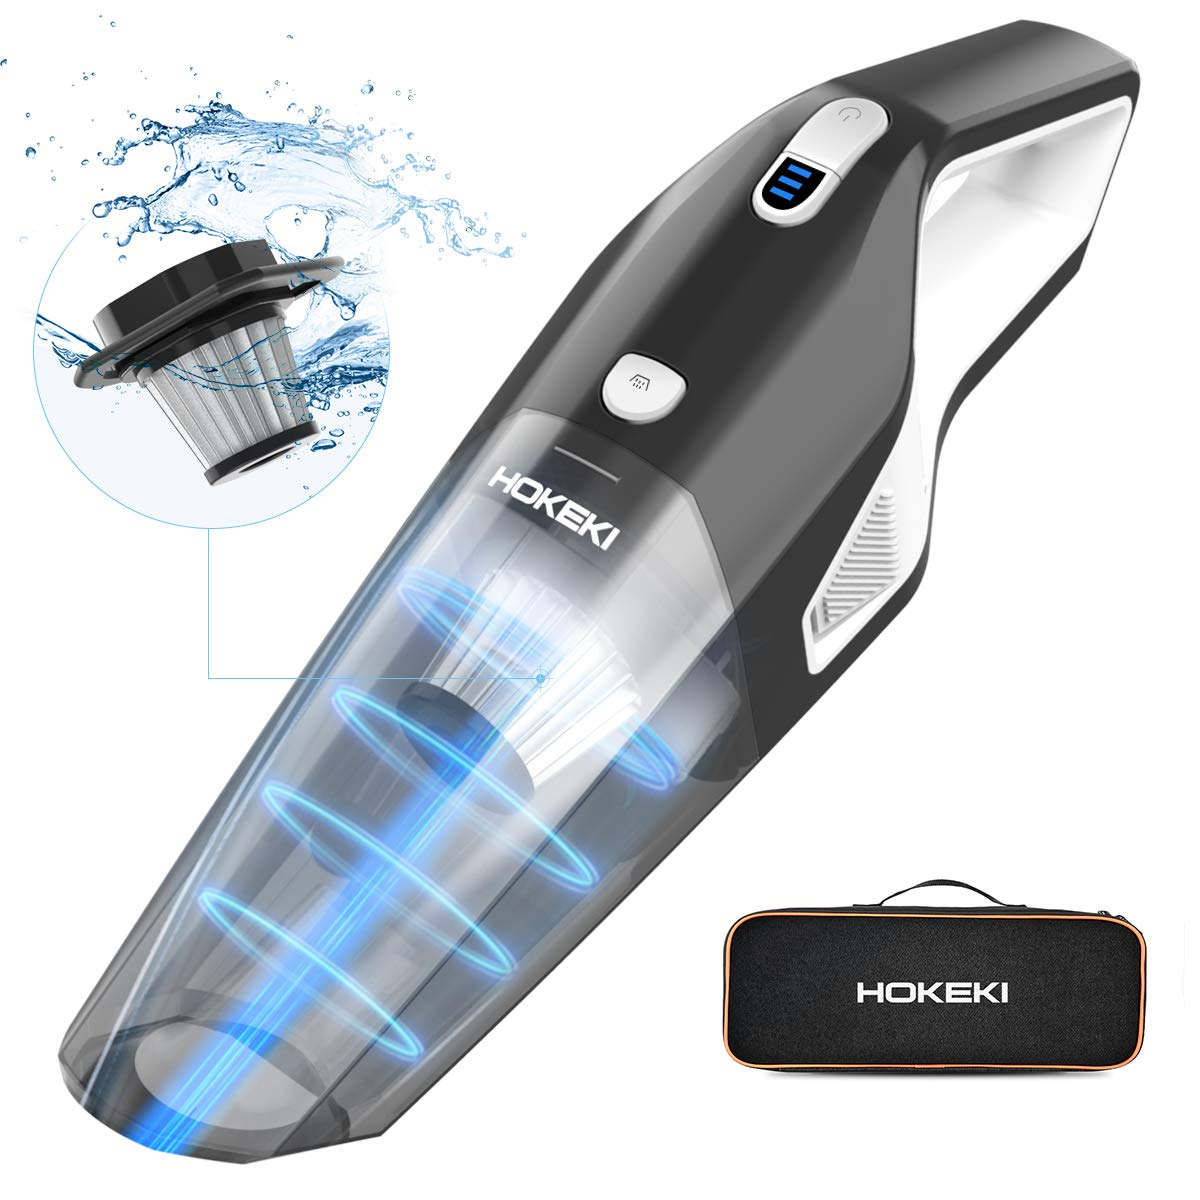 HOKEKI Handheld Vacuum Cleaner Cordless with Powerful Suction 8KPA, 2200mAh Lithium Battery & Stainless Steel Filter for Home and Car Cleaning,Wet Dry Lightweight Hand Vac